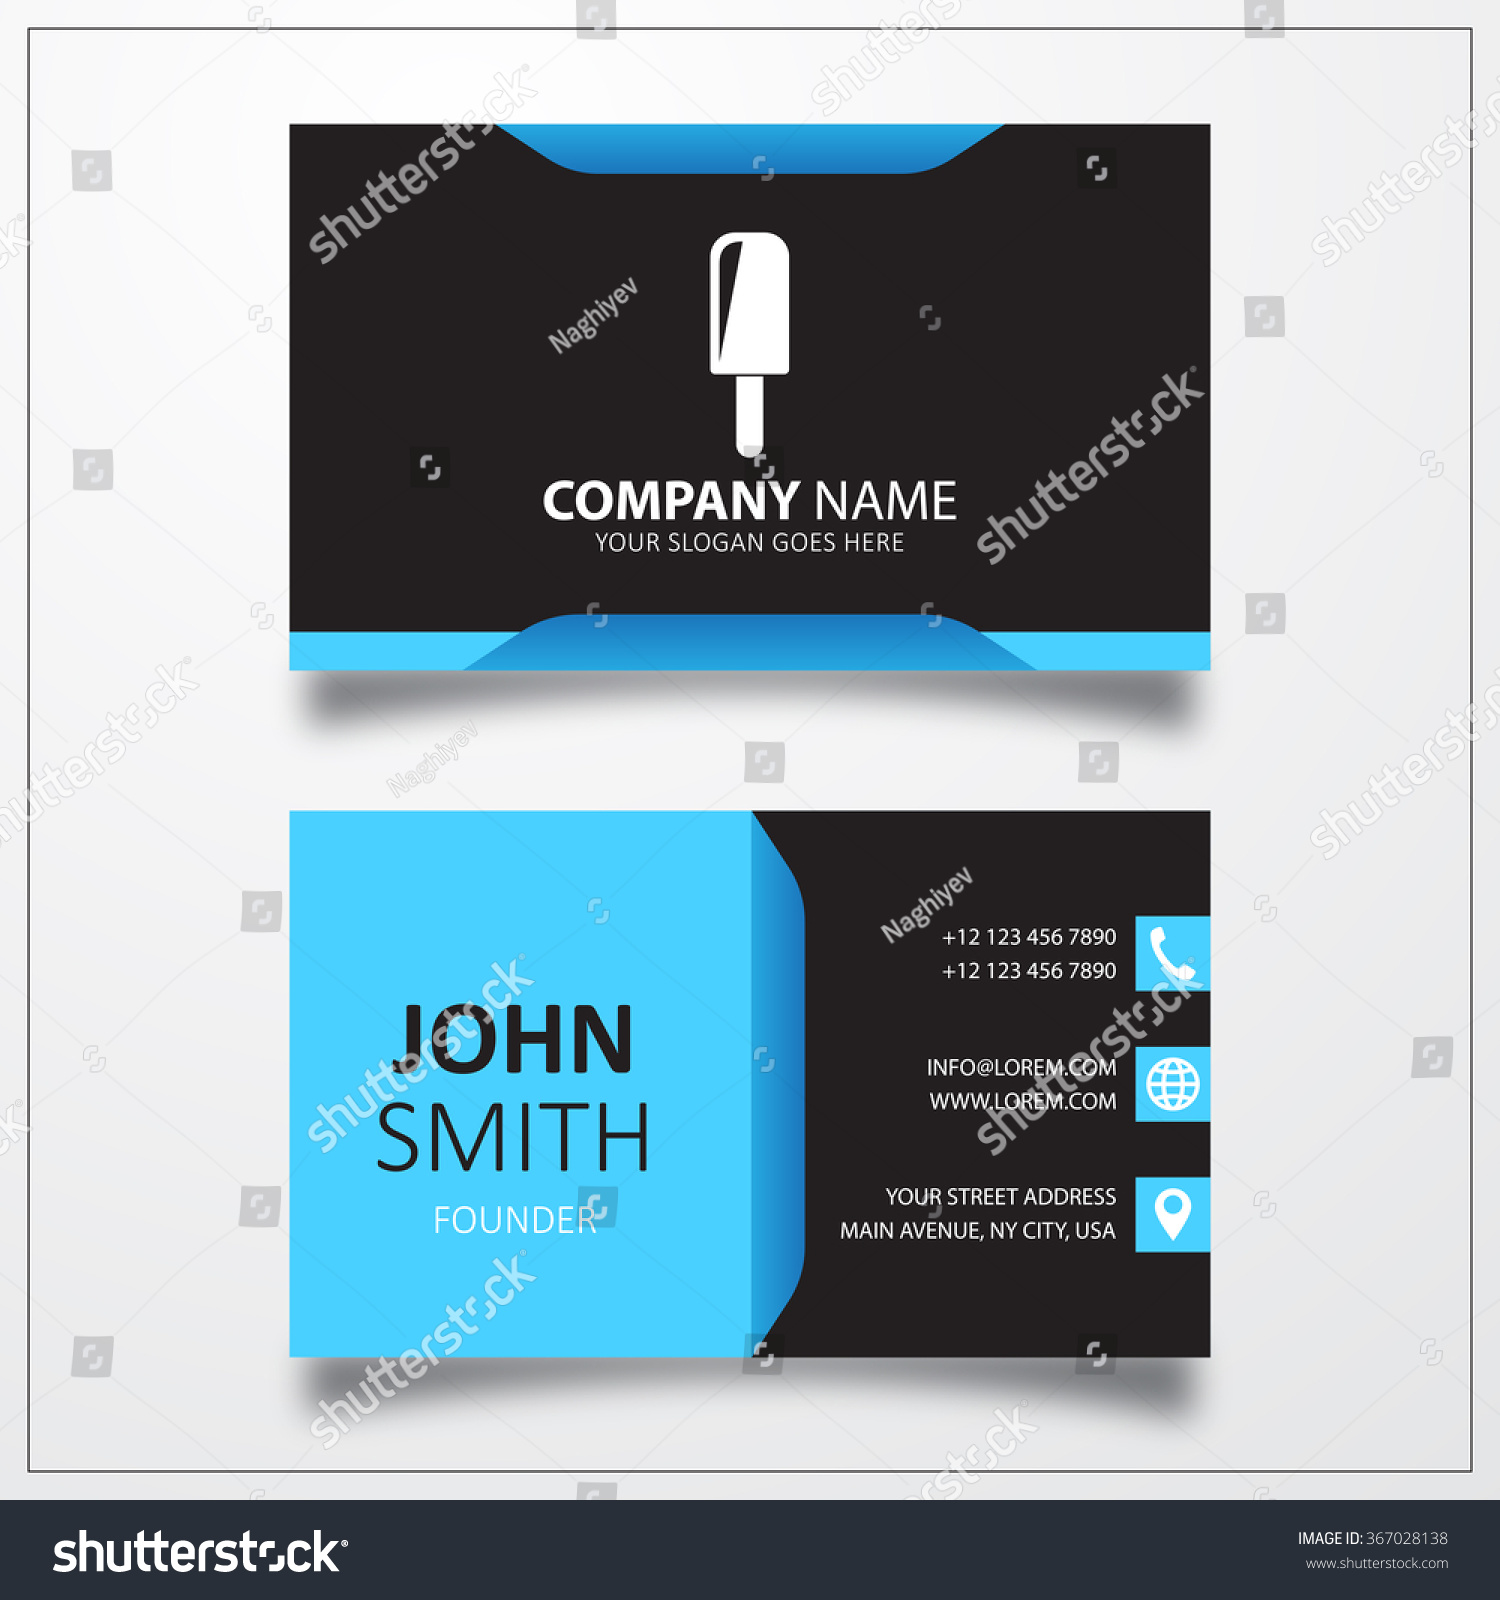 Dog Walking Business Cards Images - Free Business Cards